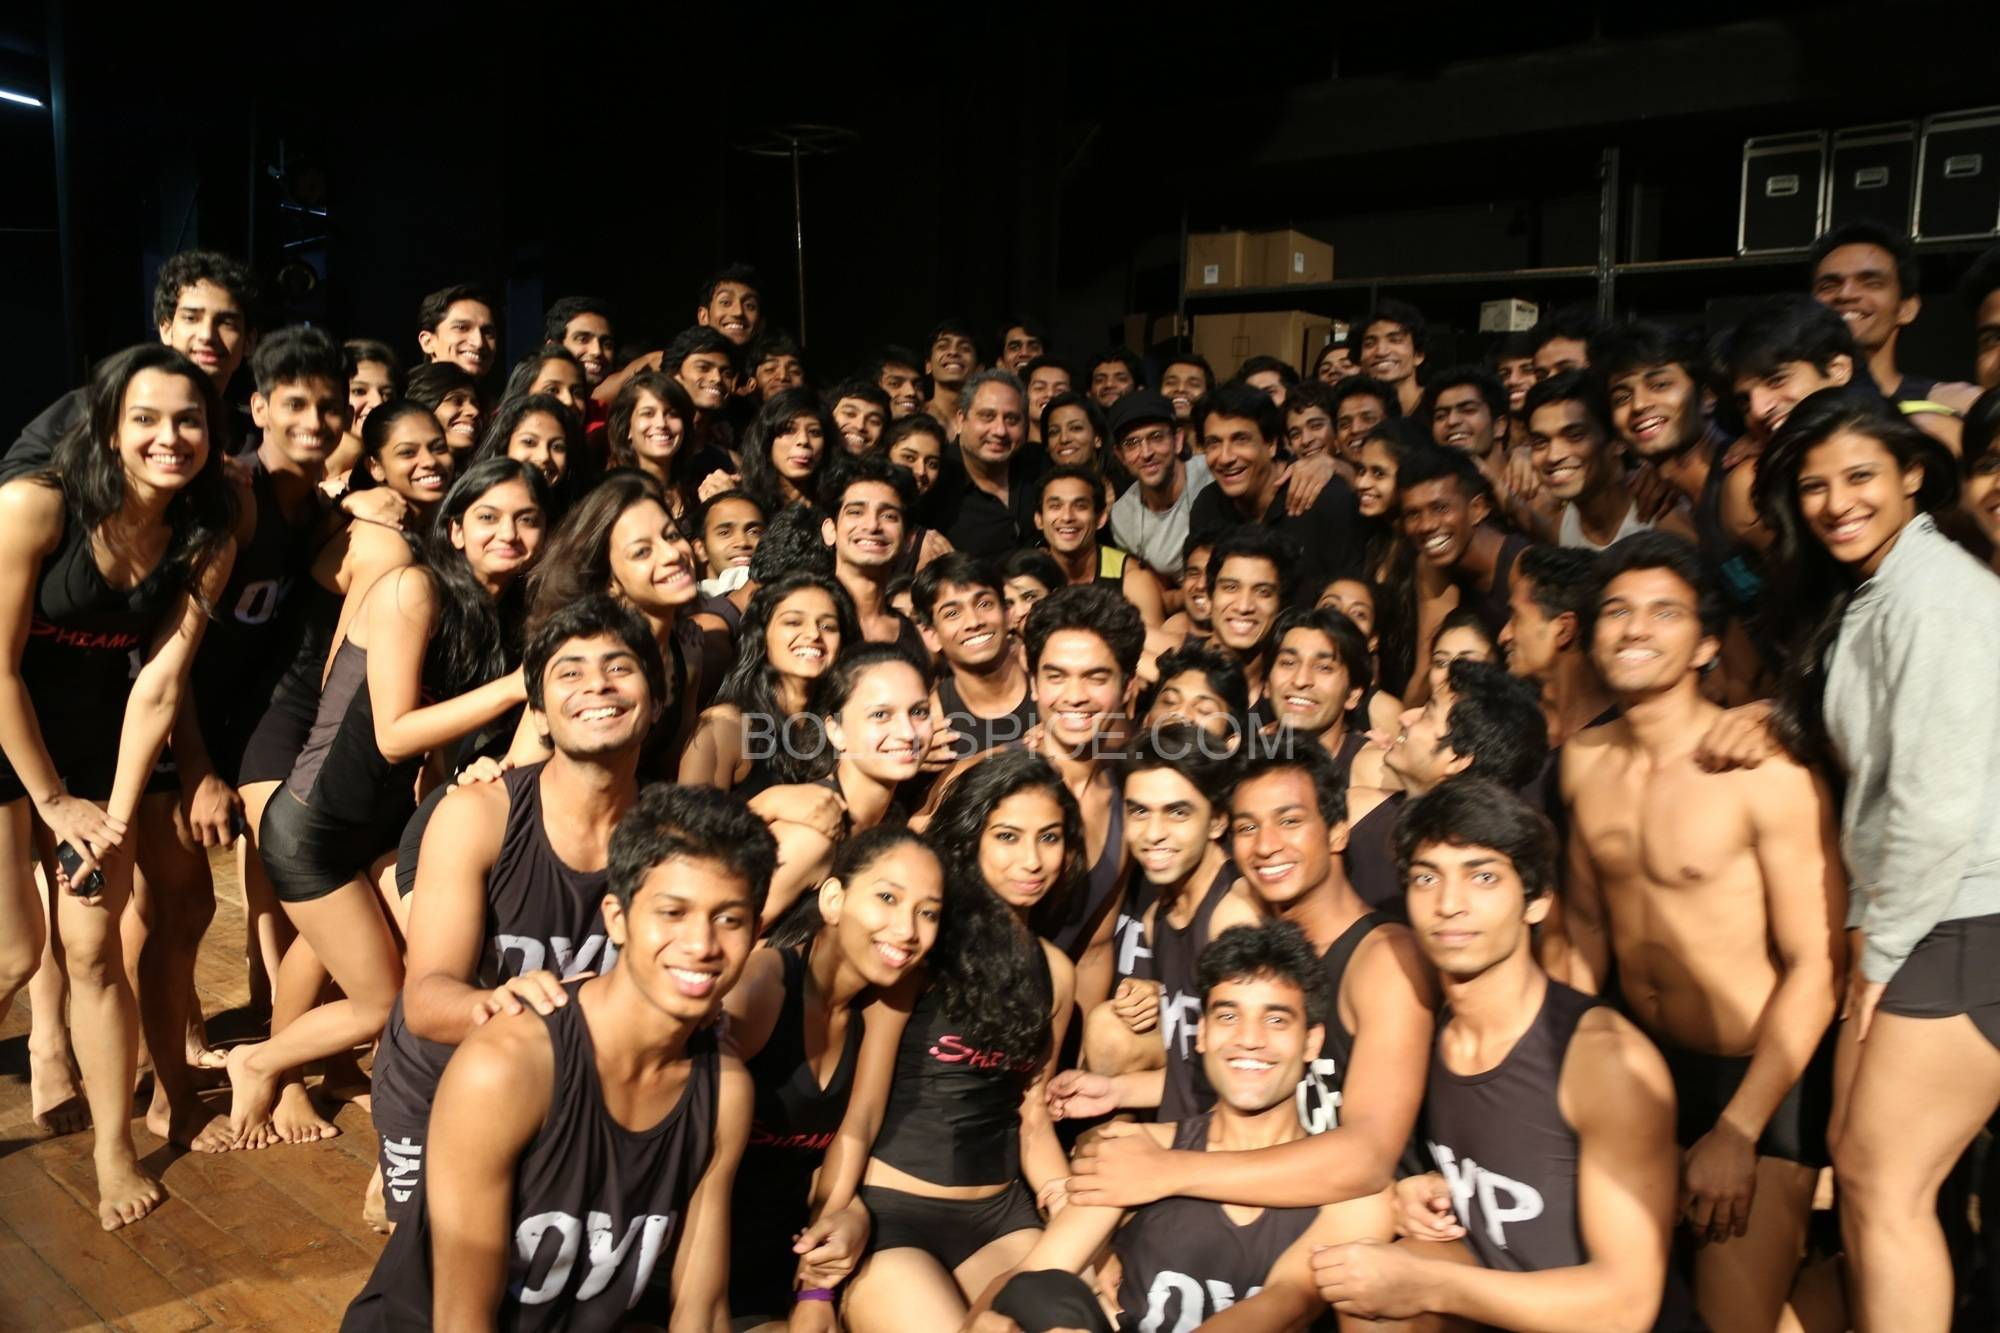 hrithikshiamakiifa1 In Pictures: Hrithik and Shiamak in rehearsal for IIFA